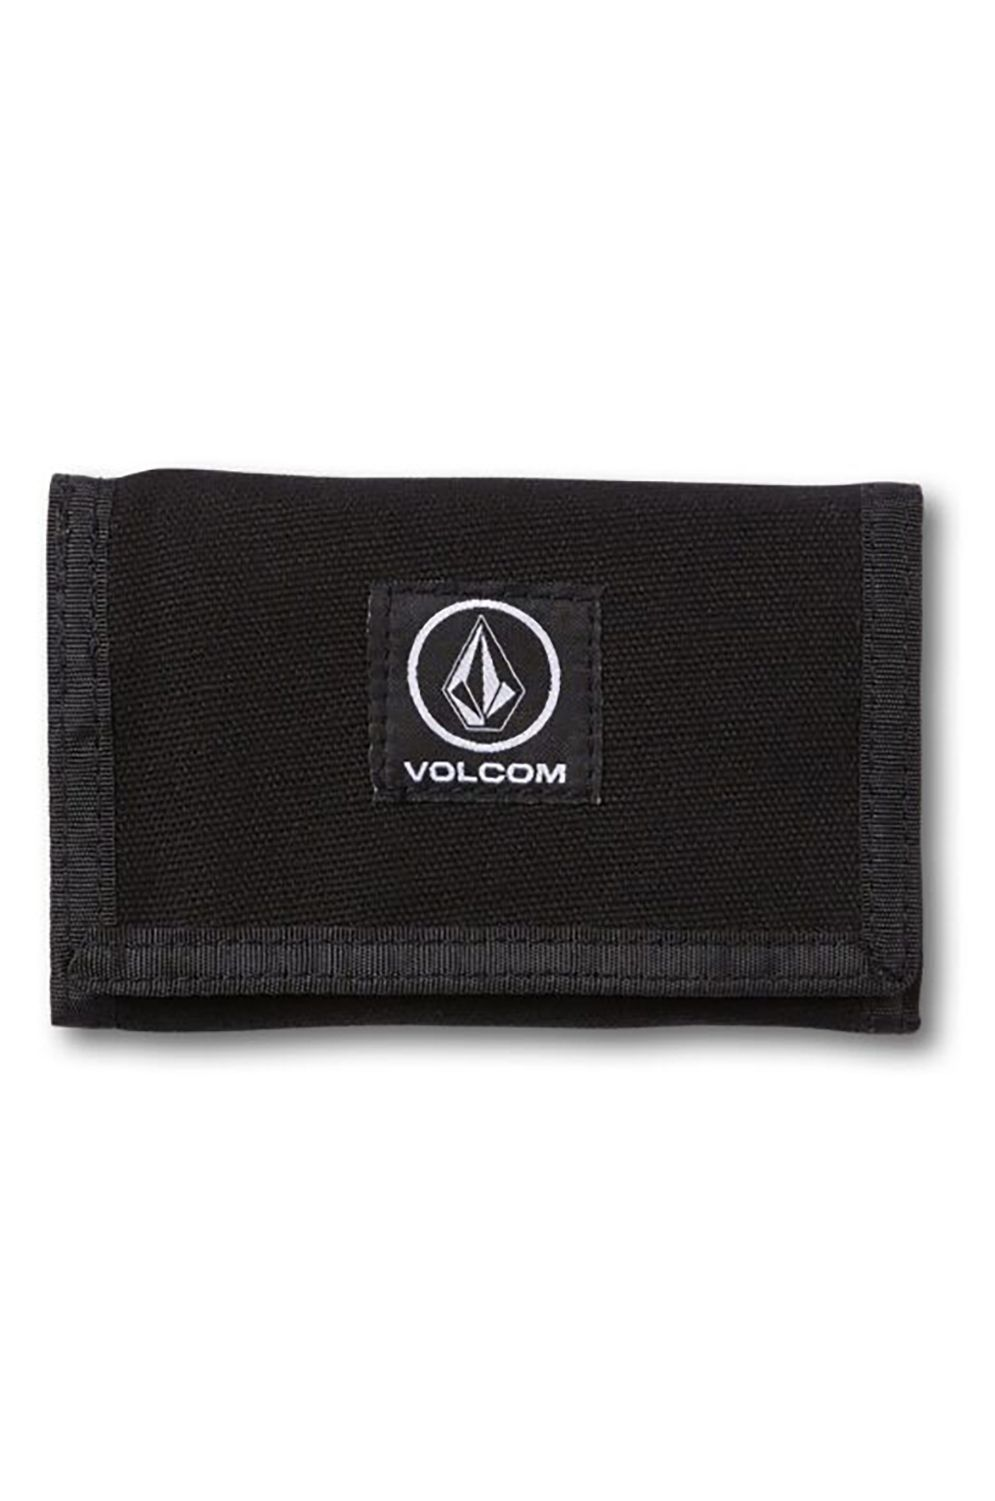 Carteira Volcom BOX STONE WALLET Black